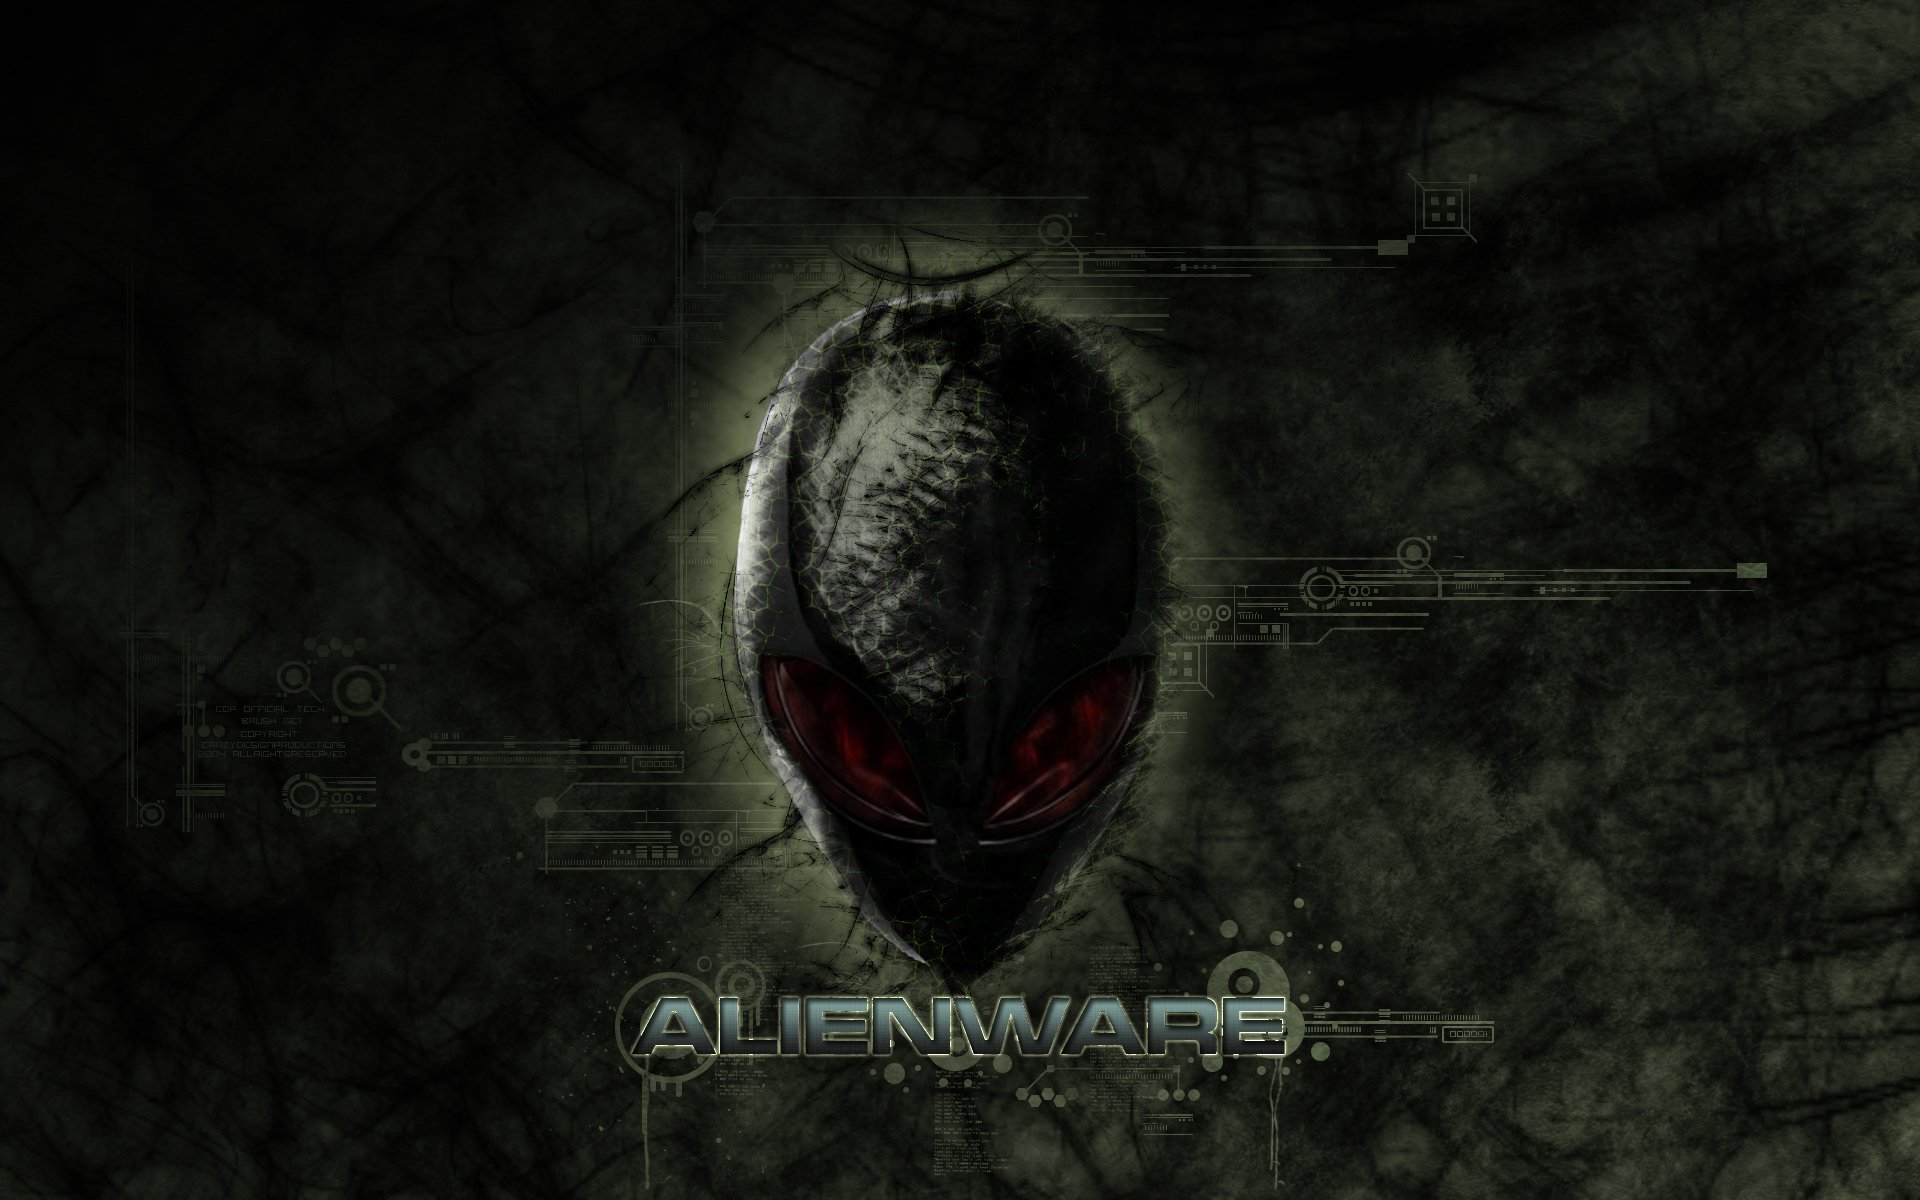 Alienware Full HD Wallpaper and Background Image ...